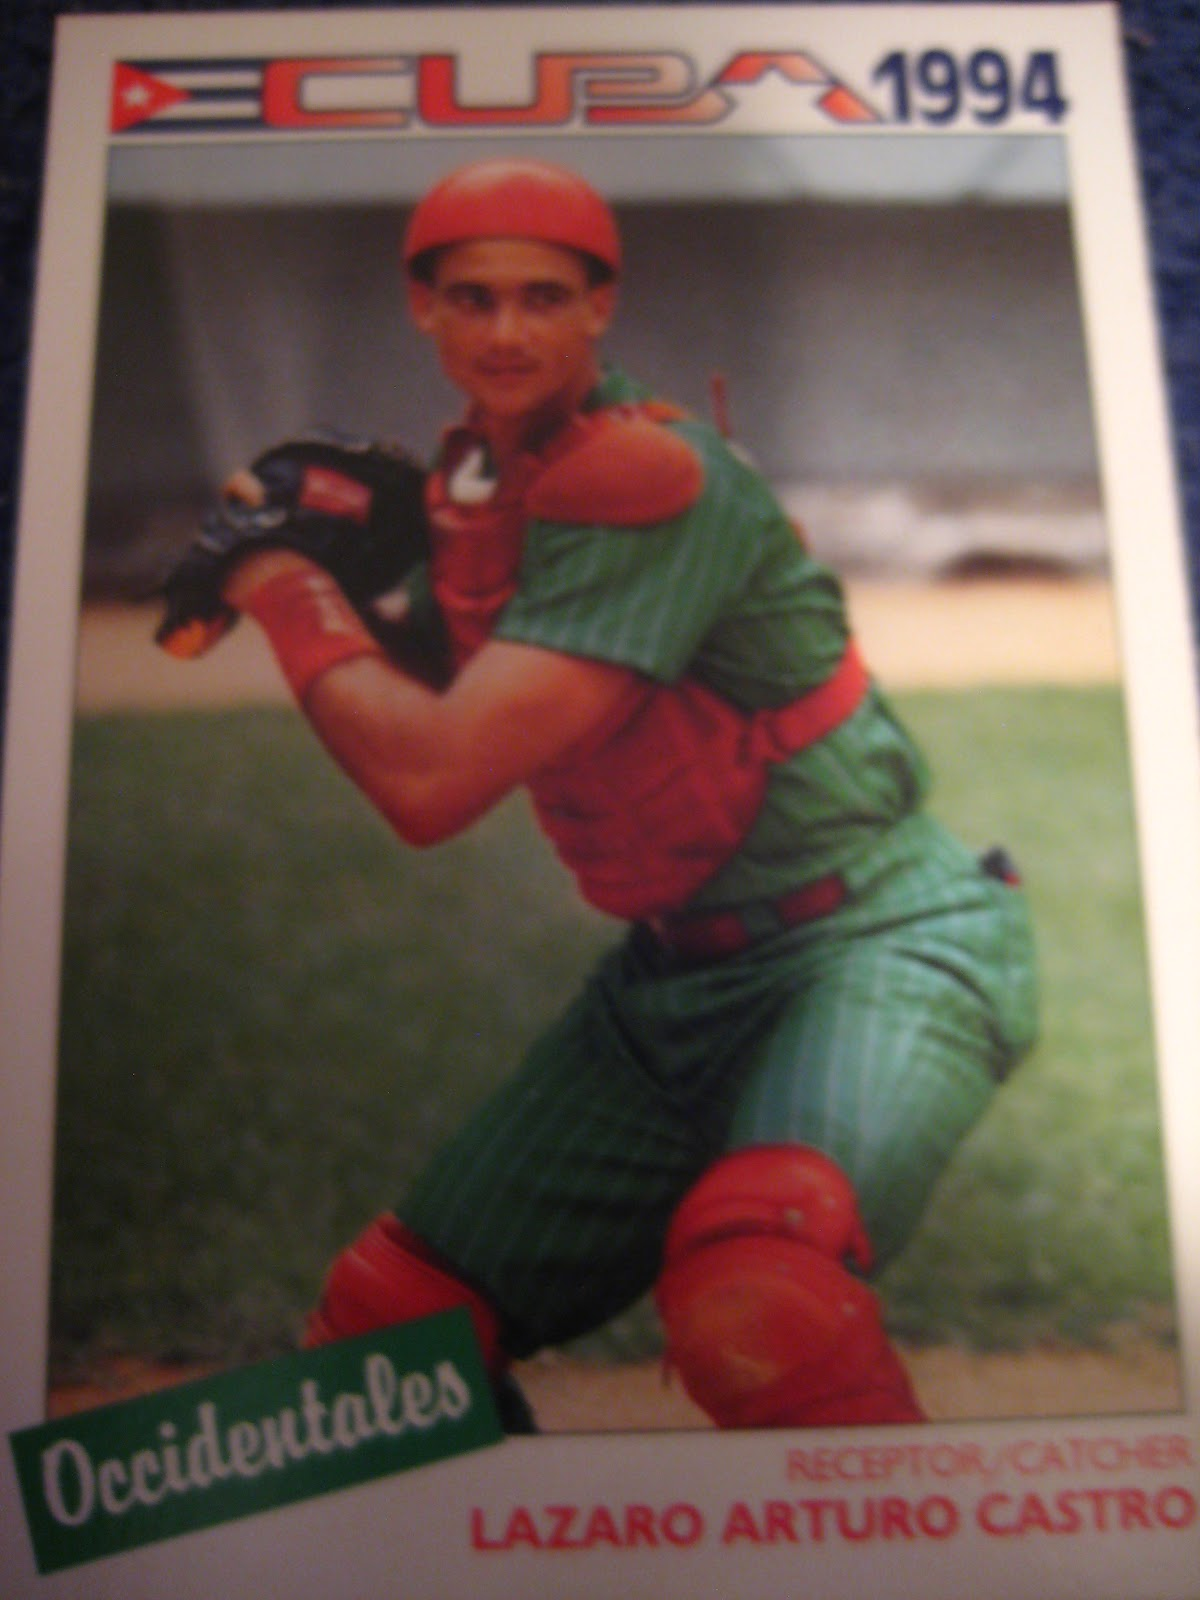 Baseball Cards Come To Life Some Highlights